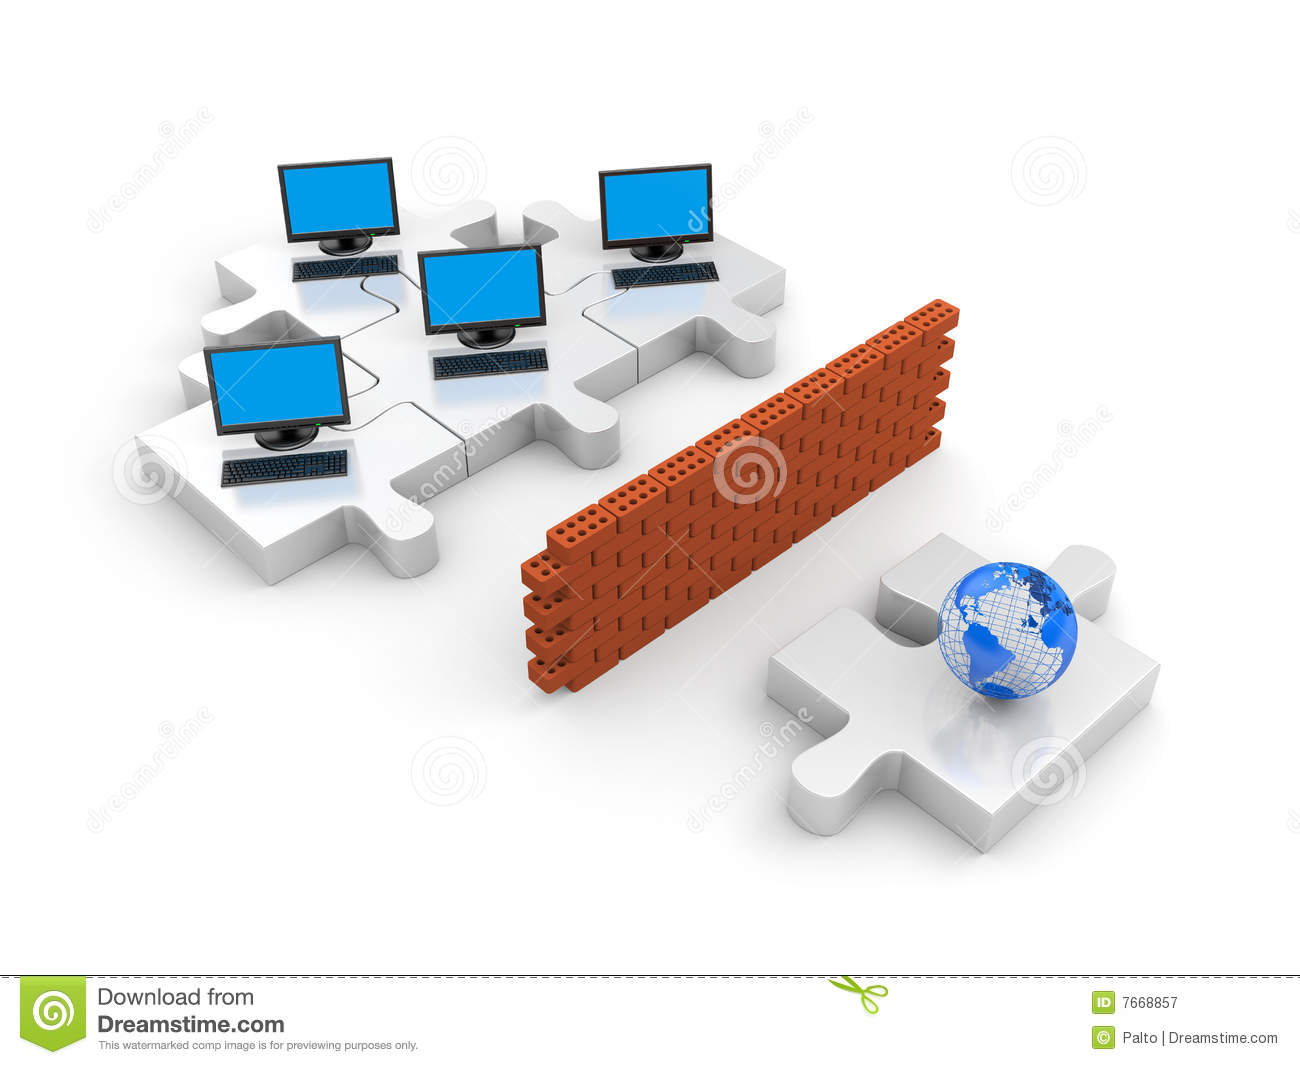 Firewall security clipart Firewall. Information Security Concept Royalty Free Stock ... clipart